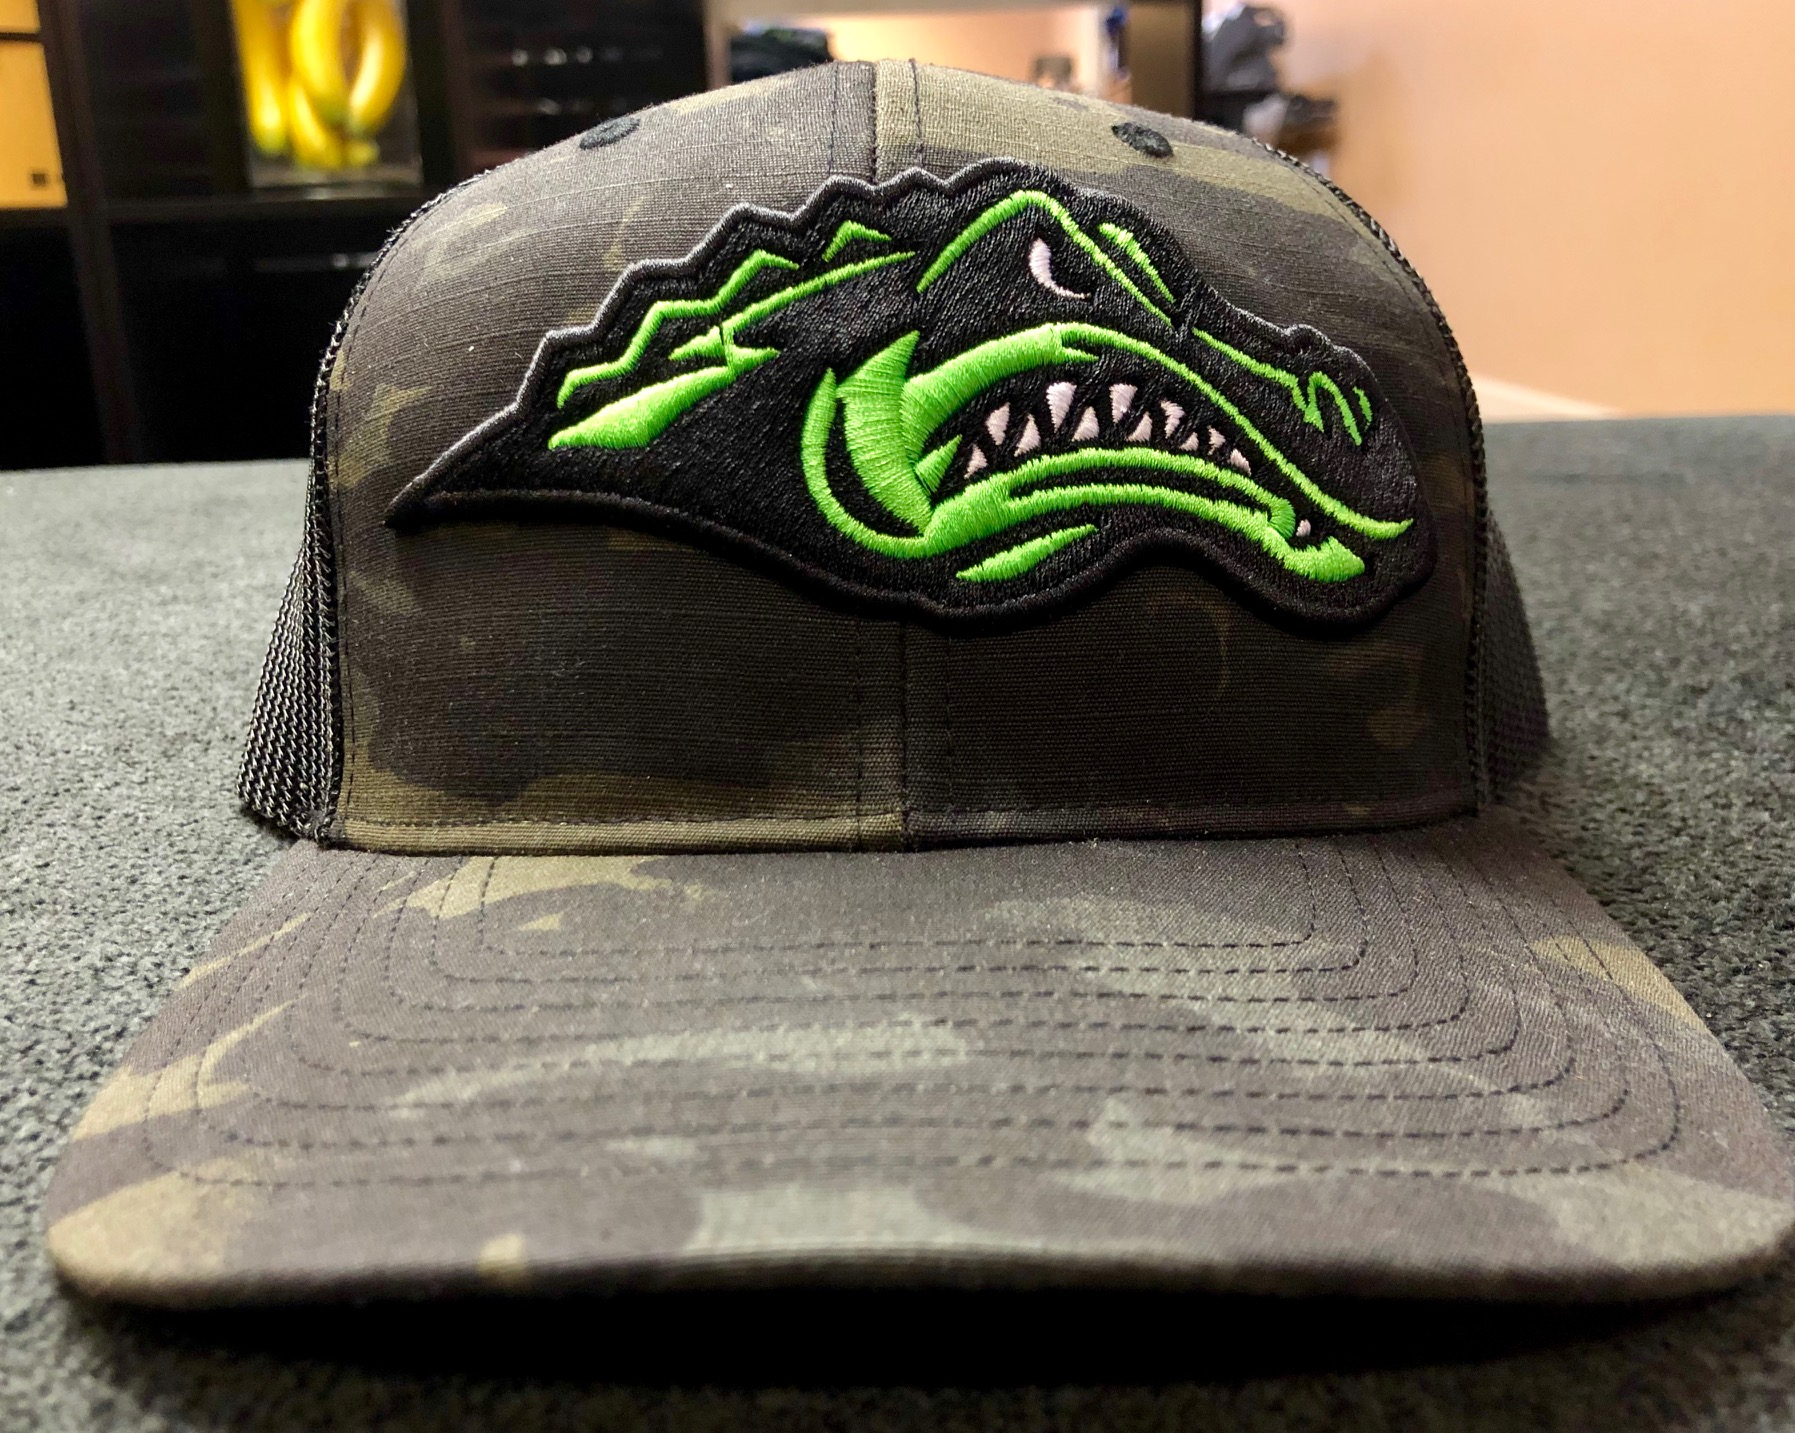 logounltd_laser_etching_embroidery_screen_printing_apparel_uniform_custom_tshirts_kirkland_bellevue_seattle_redmond_woodinville_branded_merchandise_promotional_products_logo_unltd_green_river_college_hat (3).jpg